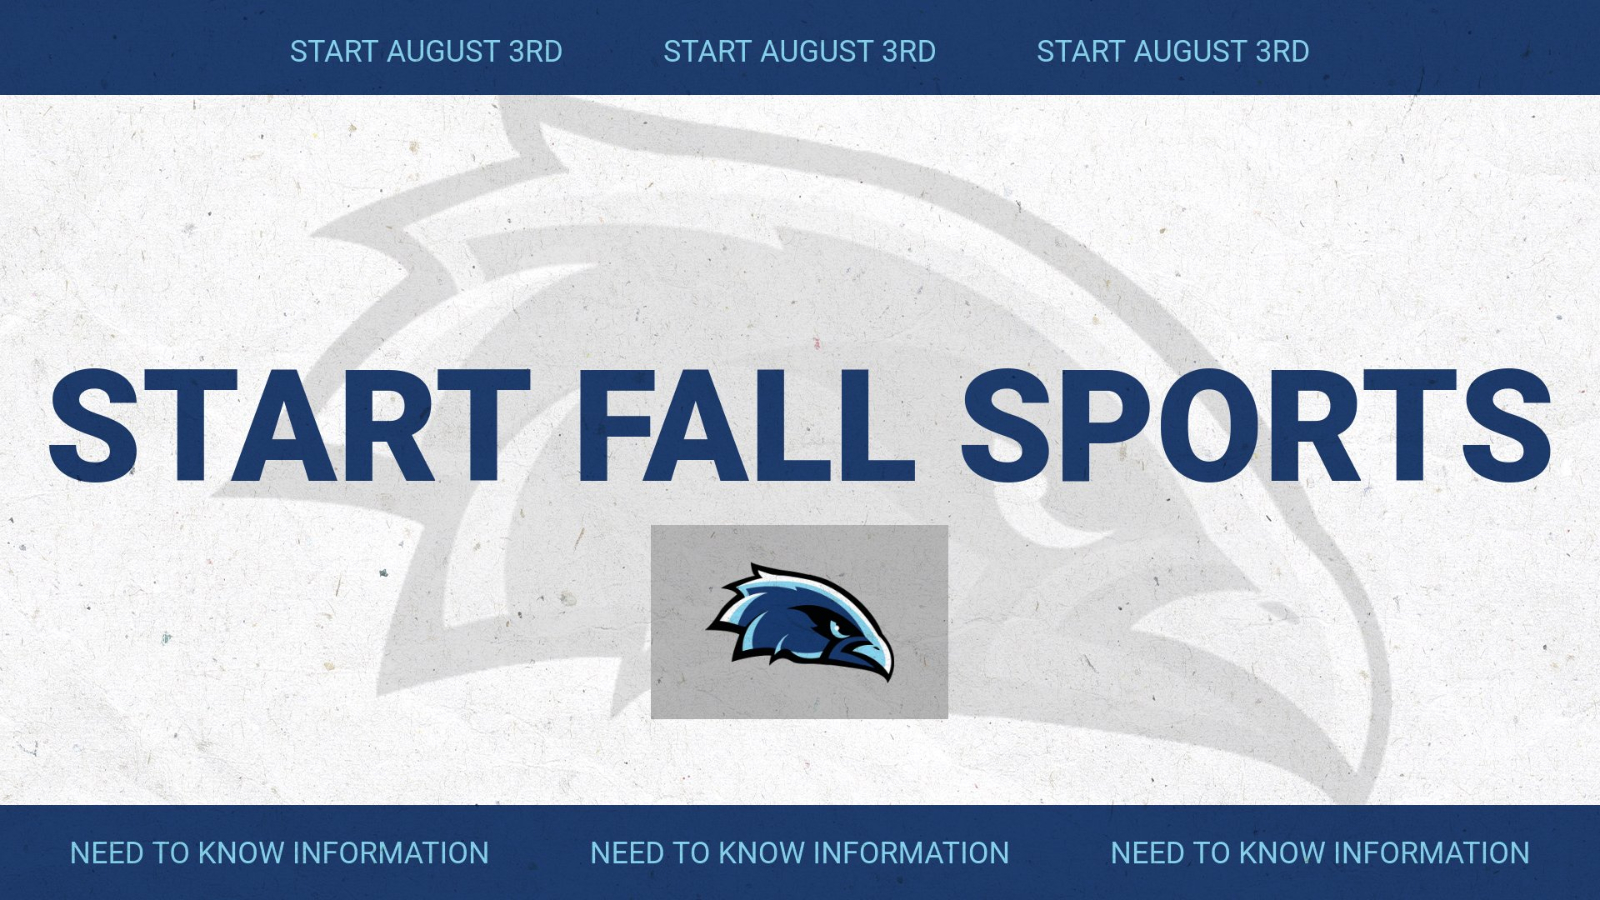 Fall Sports START August 3rd (Monday)